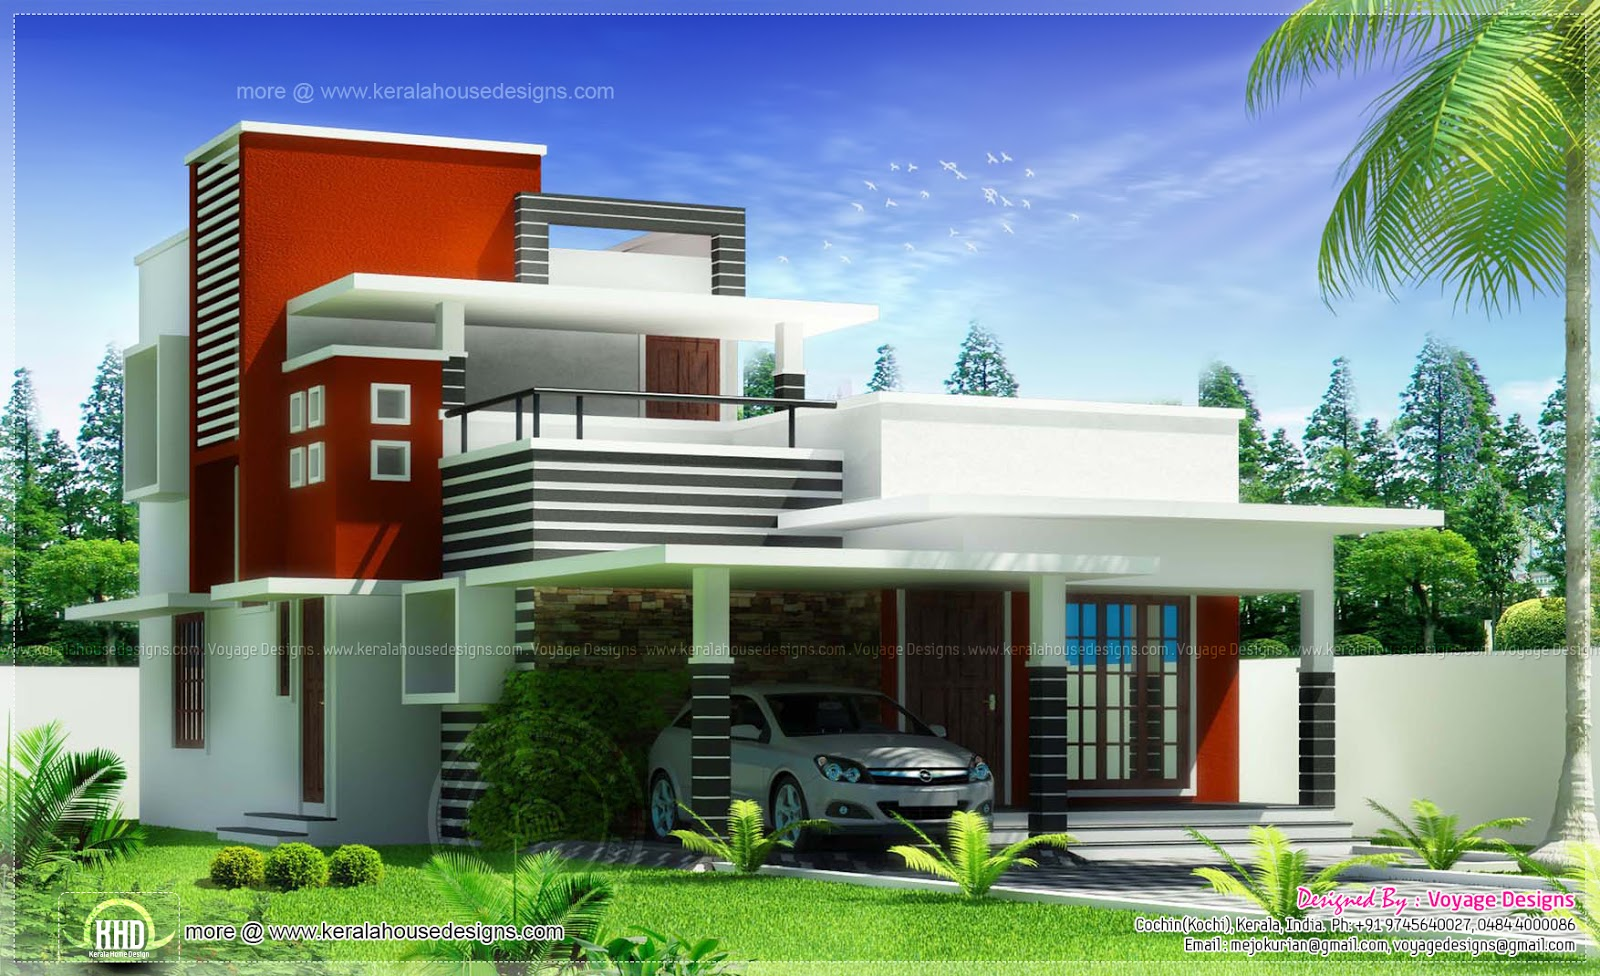 3 bed room contemporary style house kerala home design for Contemporary home designs india